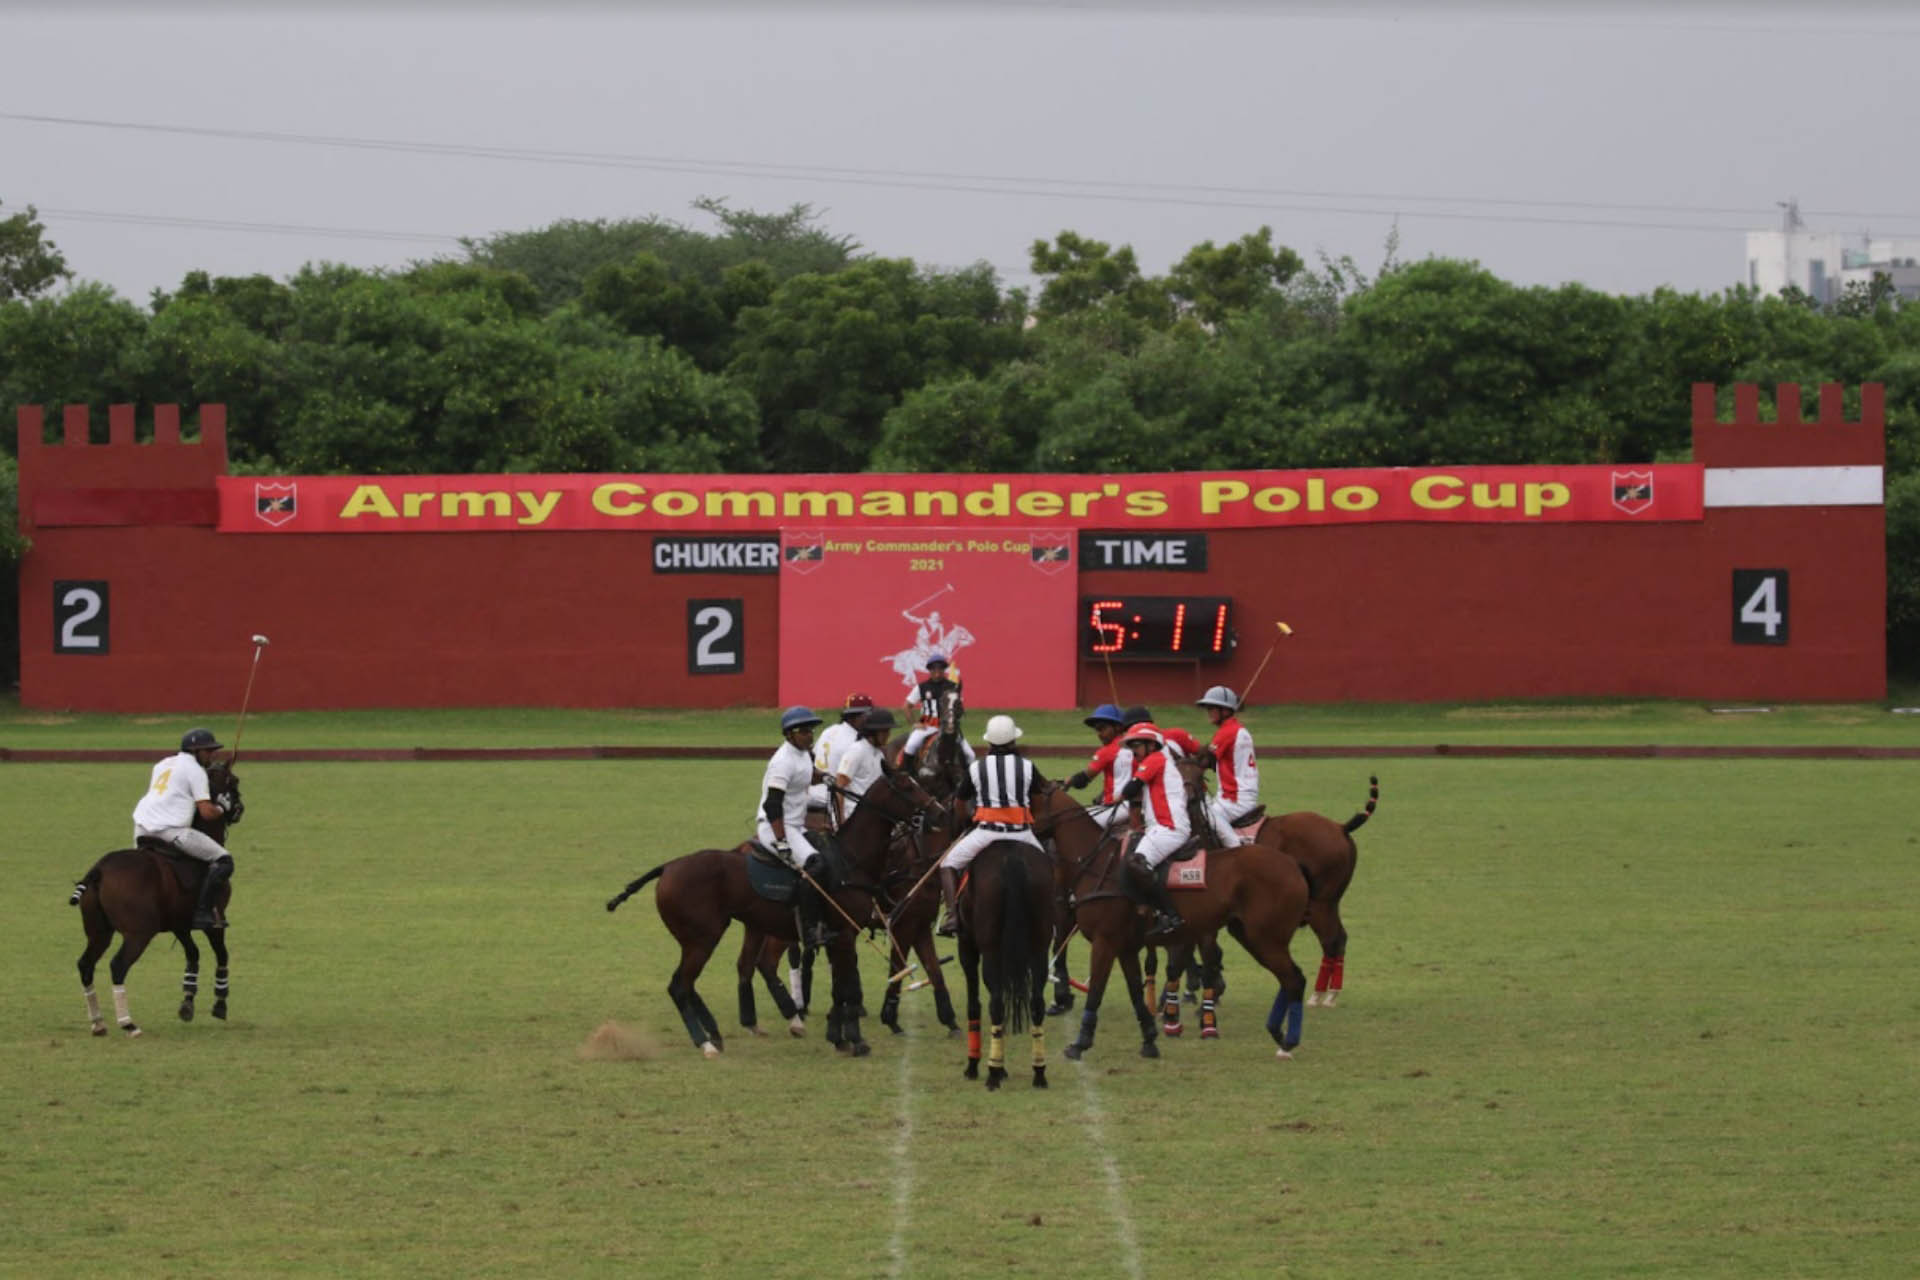 What Happened At The 10 Goal Army CDR's Polo Cup?